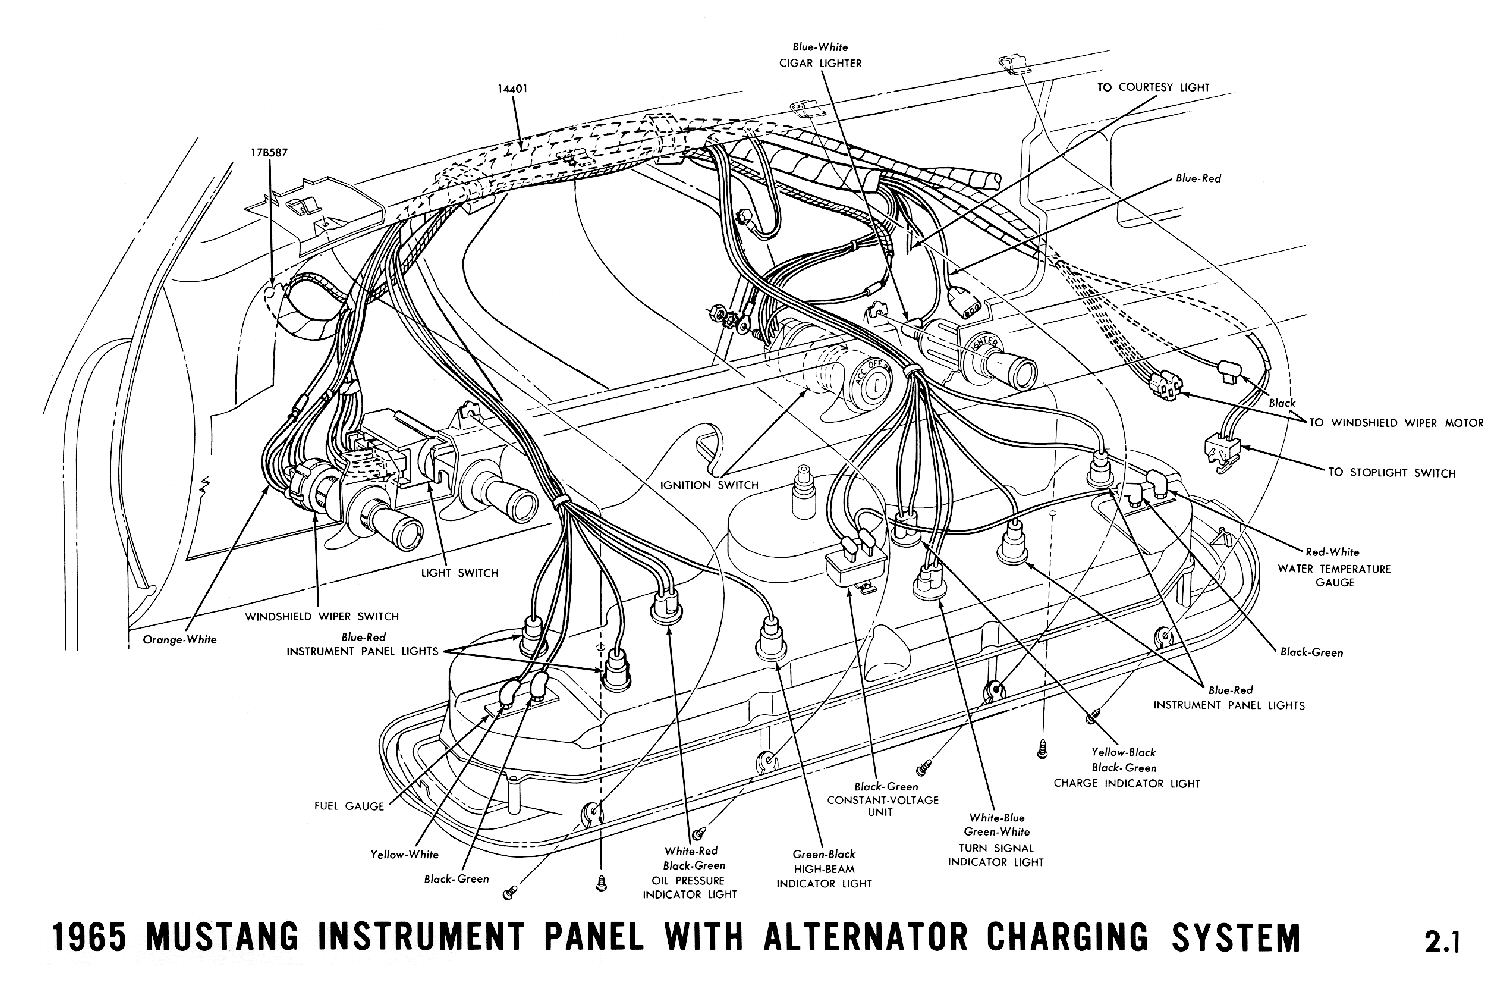 1965a 1965 mustang wiring diagrams average joe restoration mustang wiring harness diagram at suagrazia.org